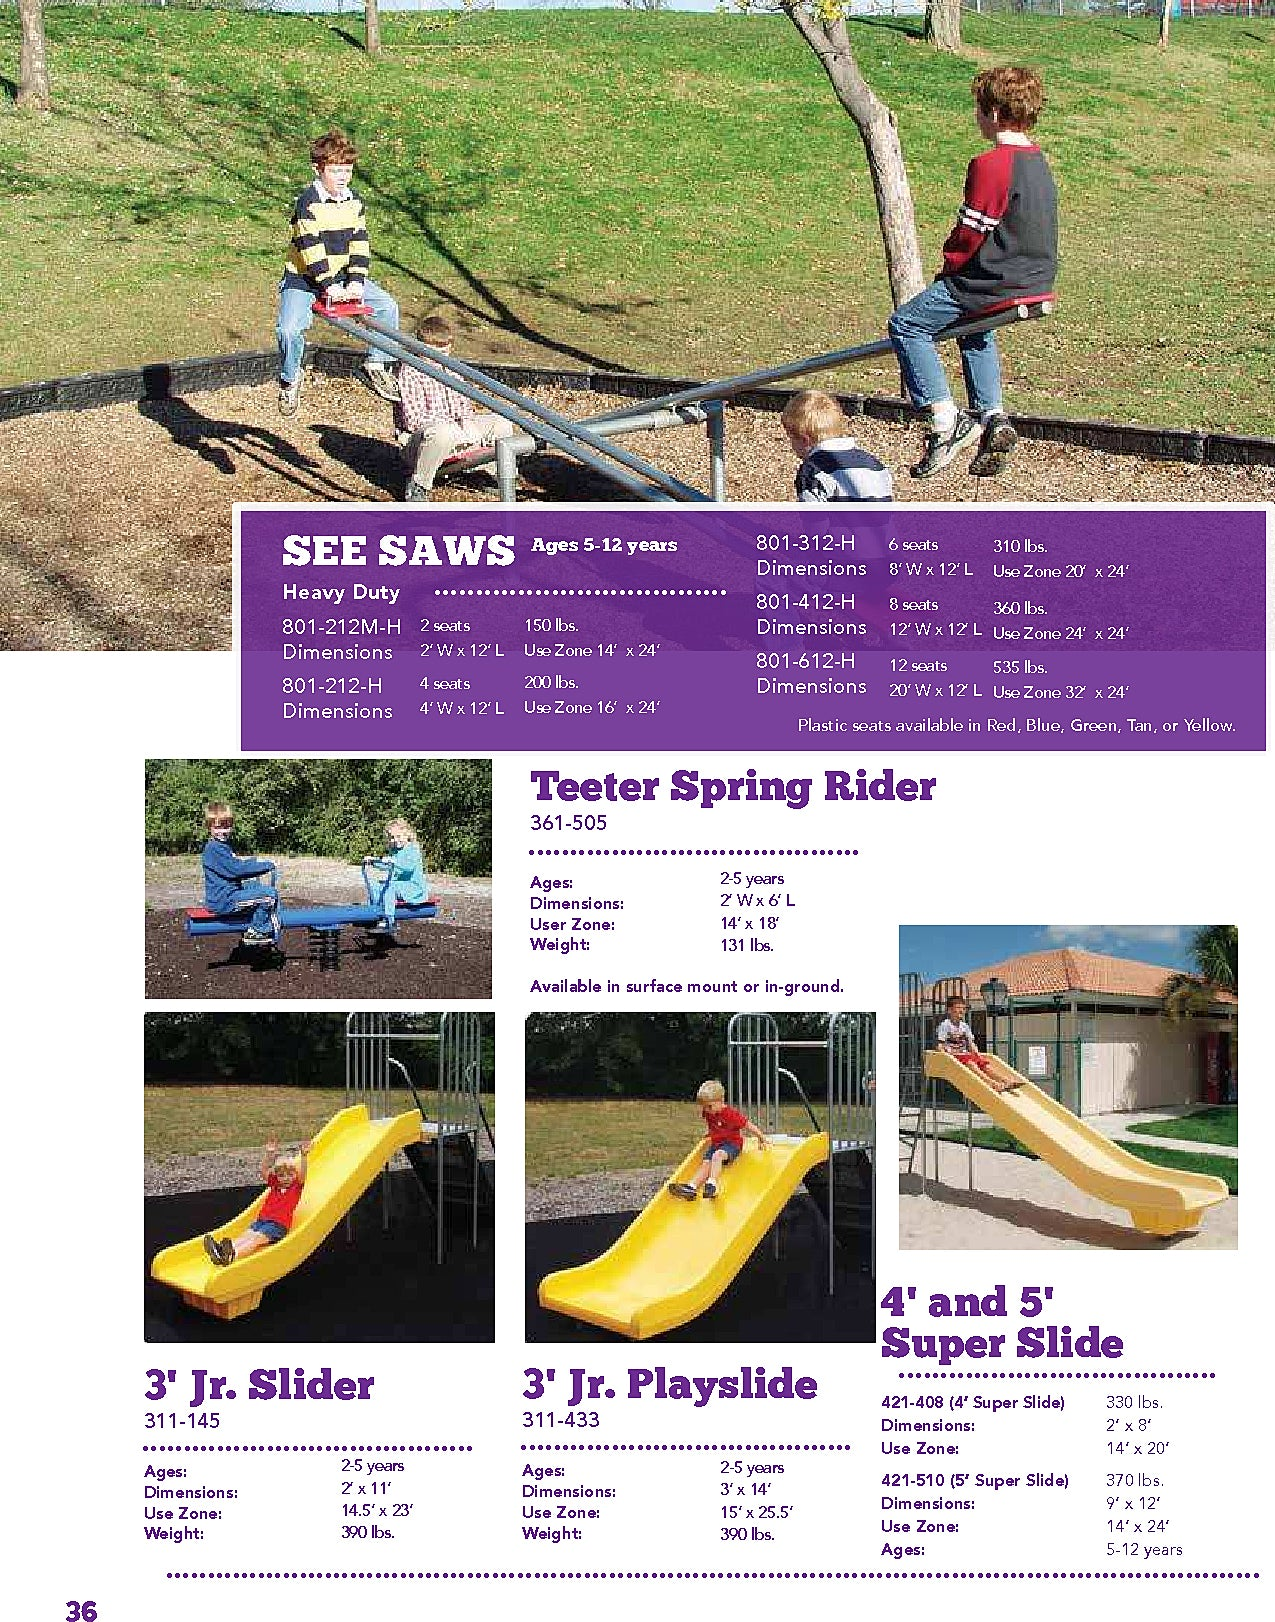 0161CatalogPage1Apr20180036.jpg